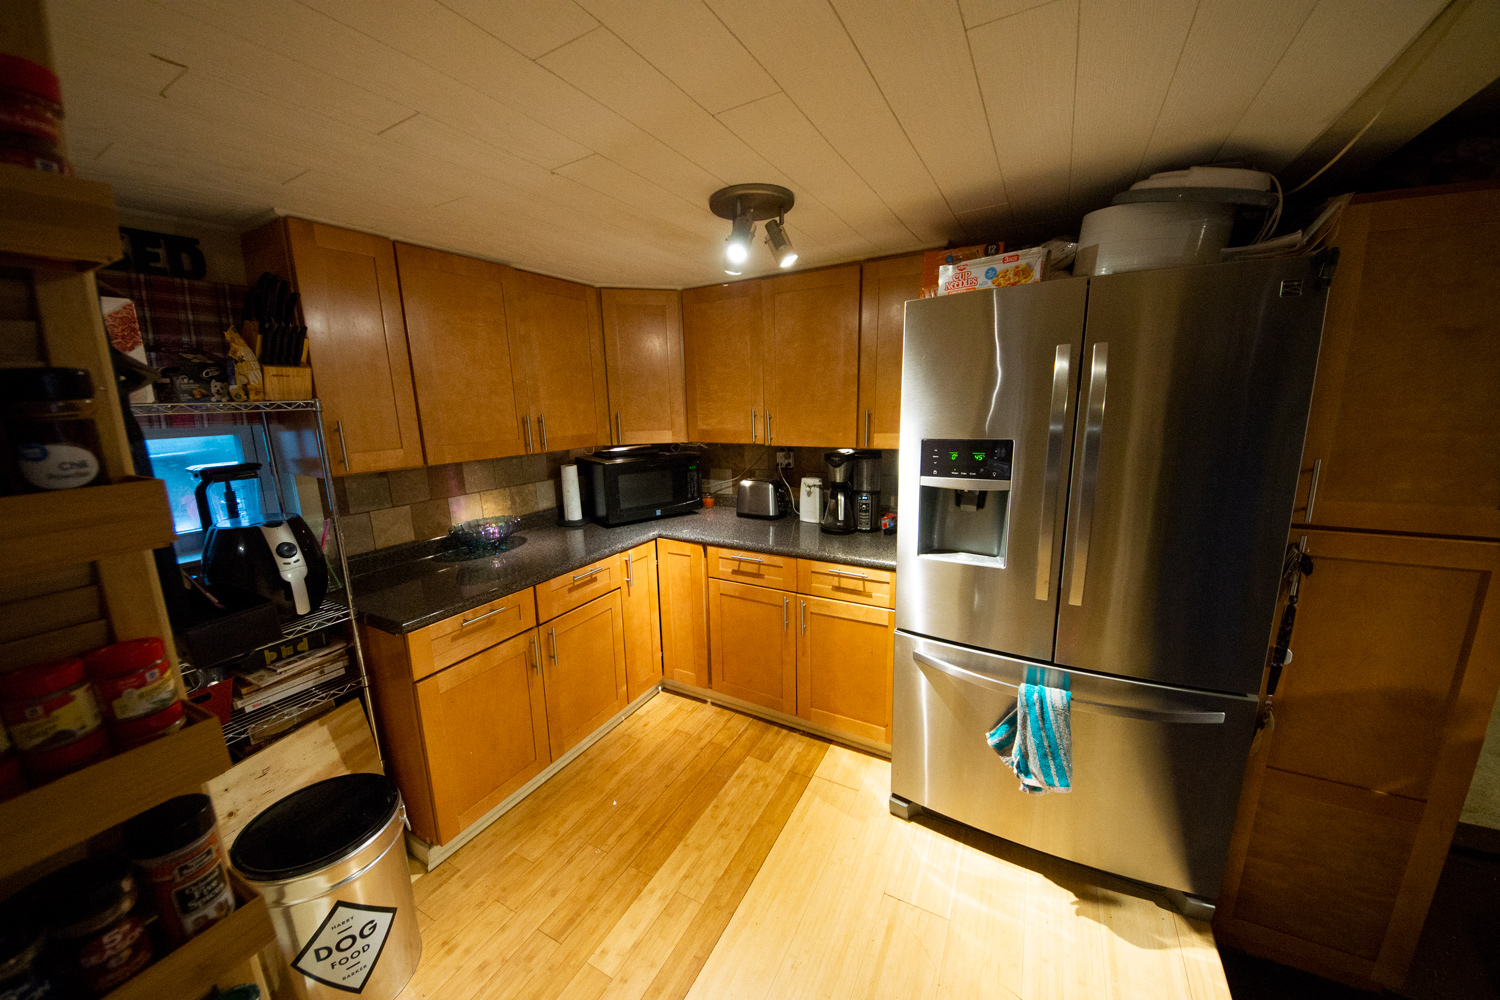 2 Greenbriar Ct, East Rochester, NY 14445